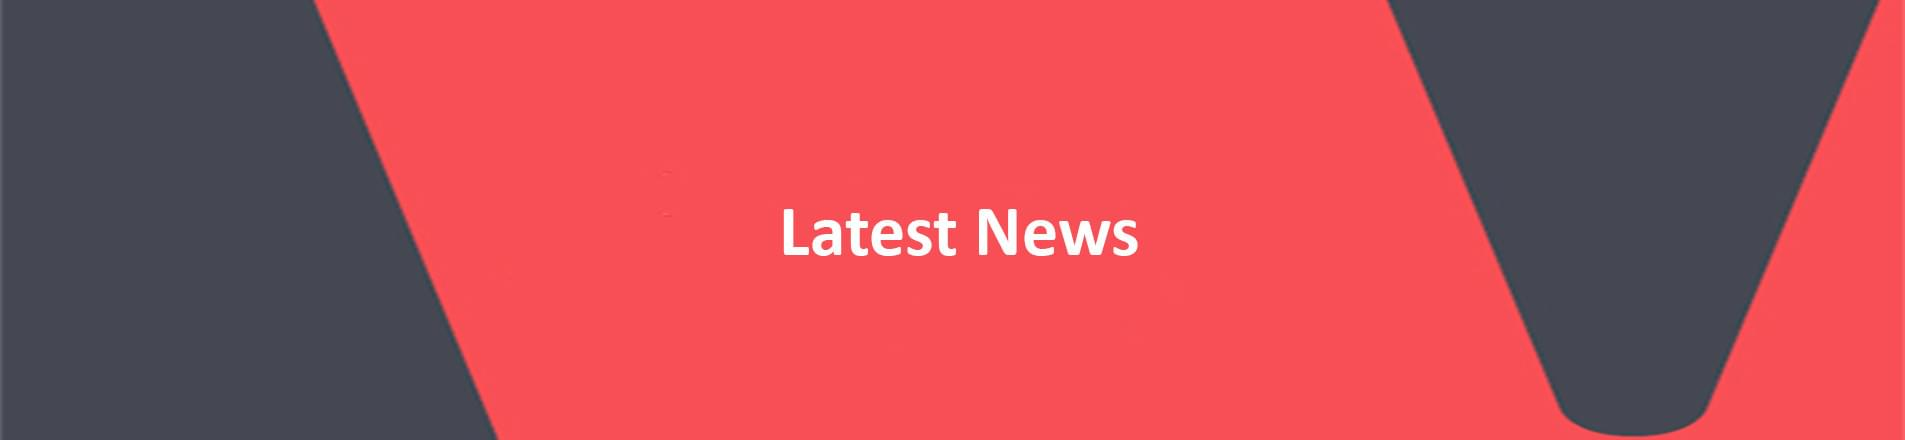 Red background with white text, spelling Latest News